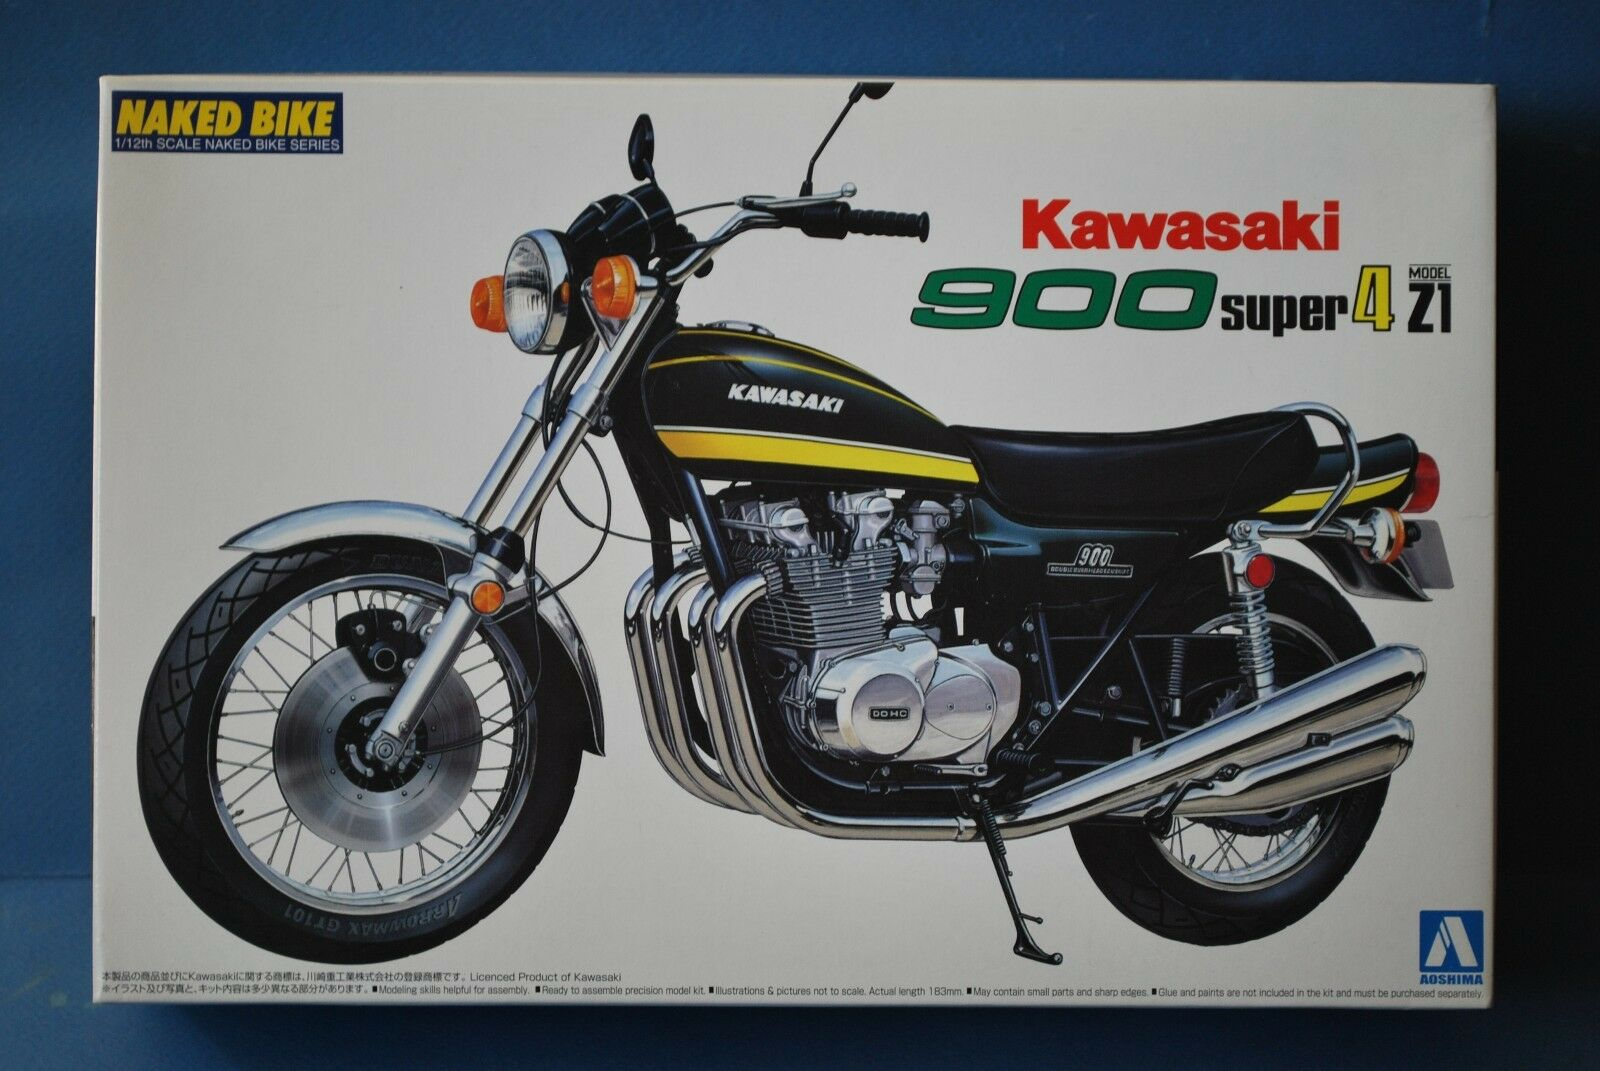 AOSHIMA JAPAN 1 12  KAWASAKI 900 SUPER 4 Z1.